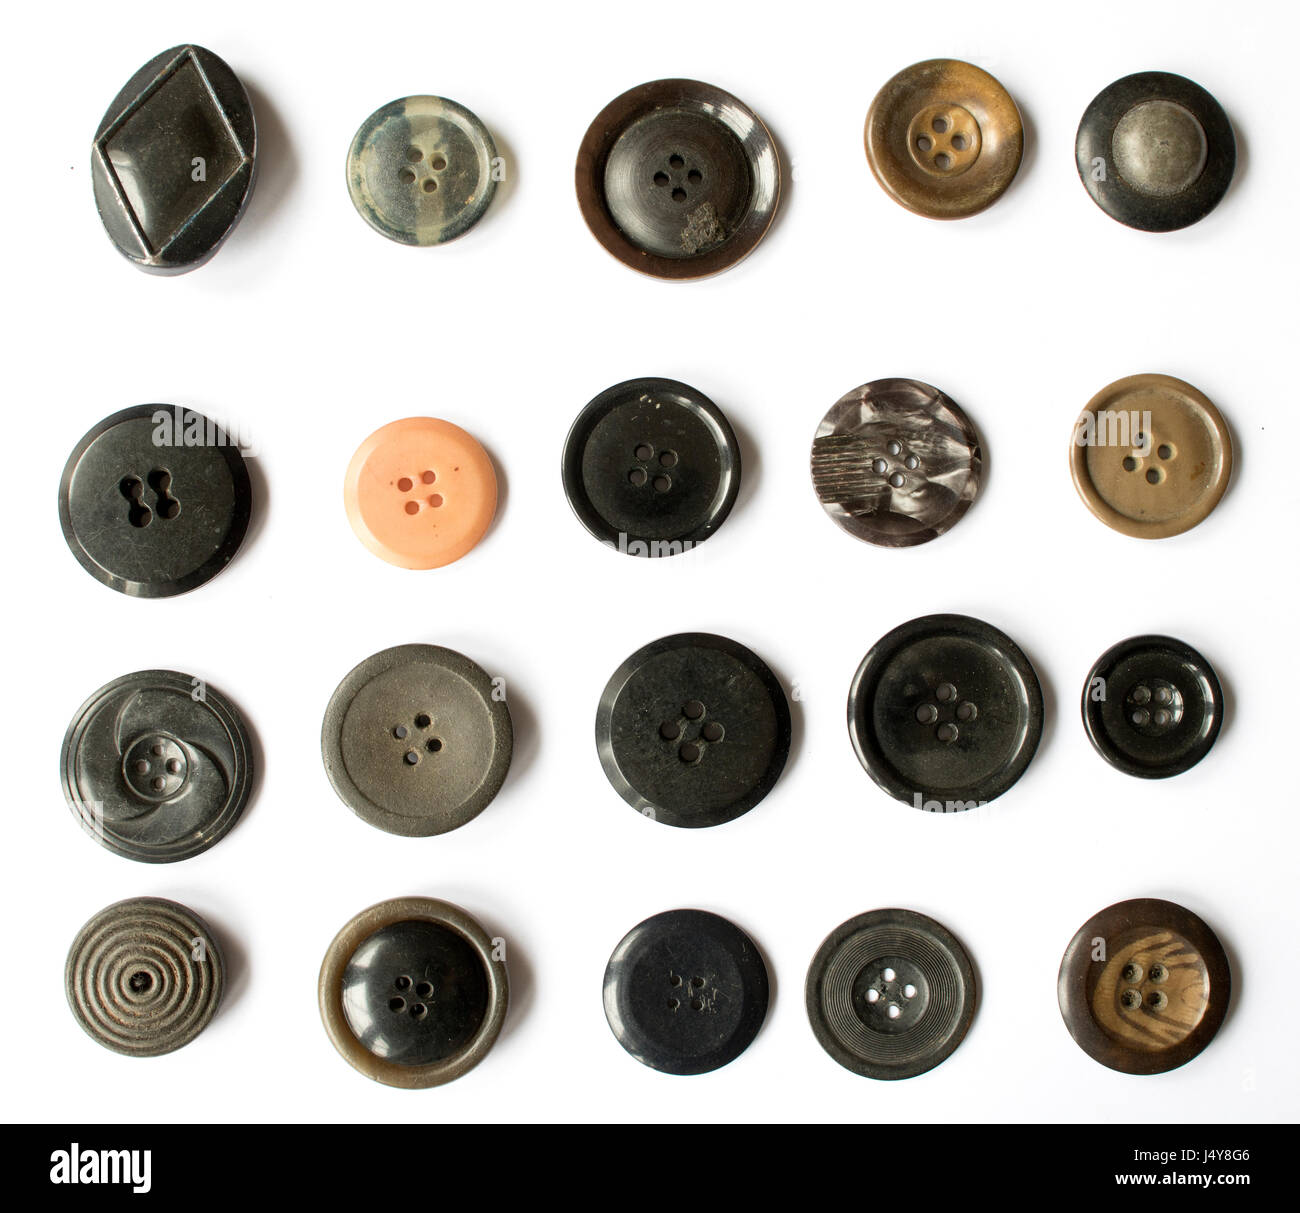 Mixed Collection of Buttons Vectors - Stock Image